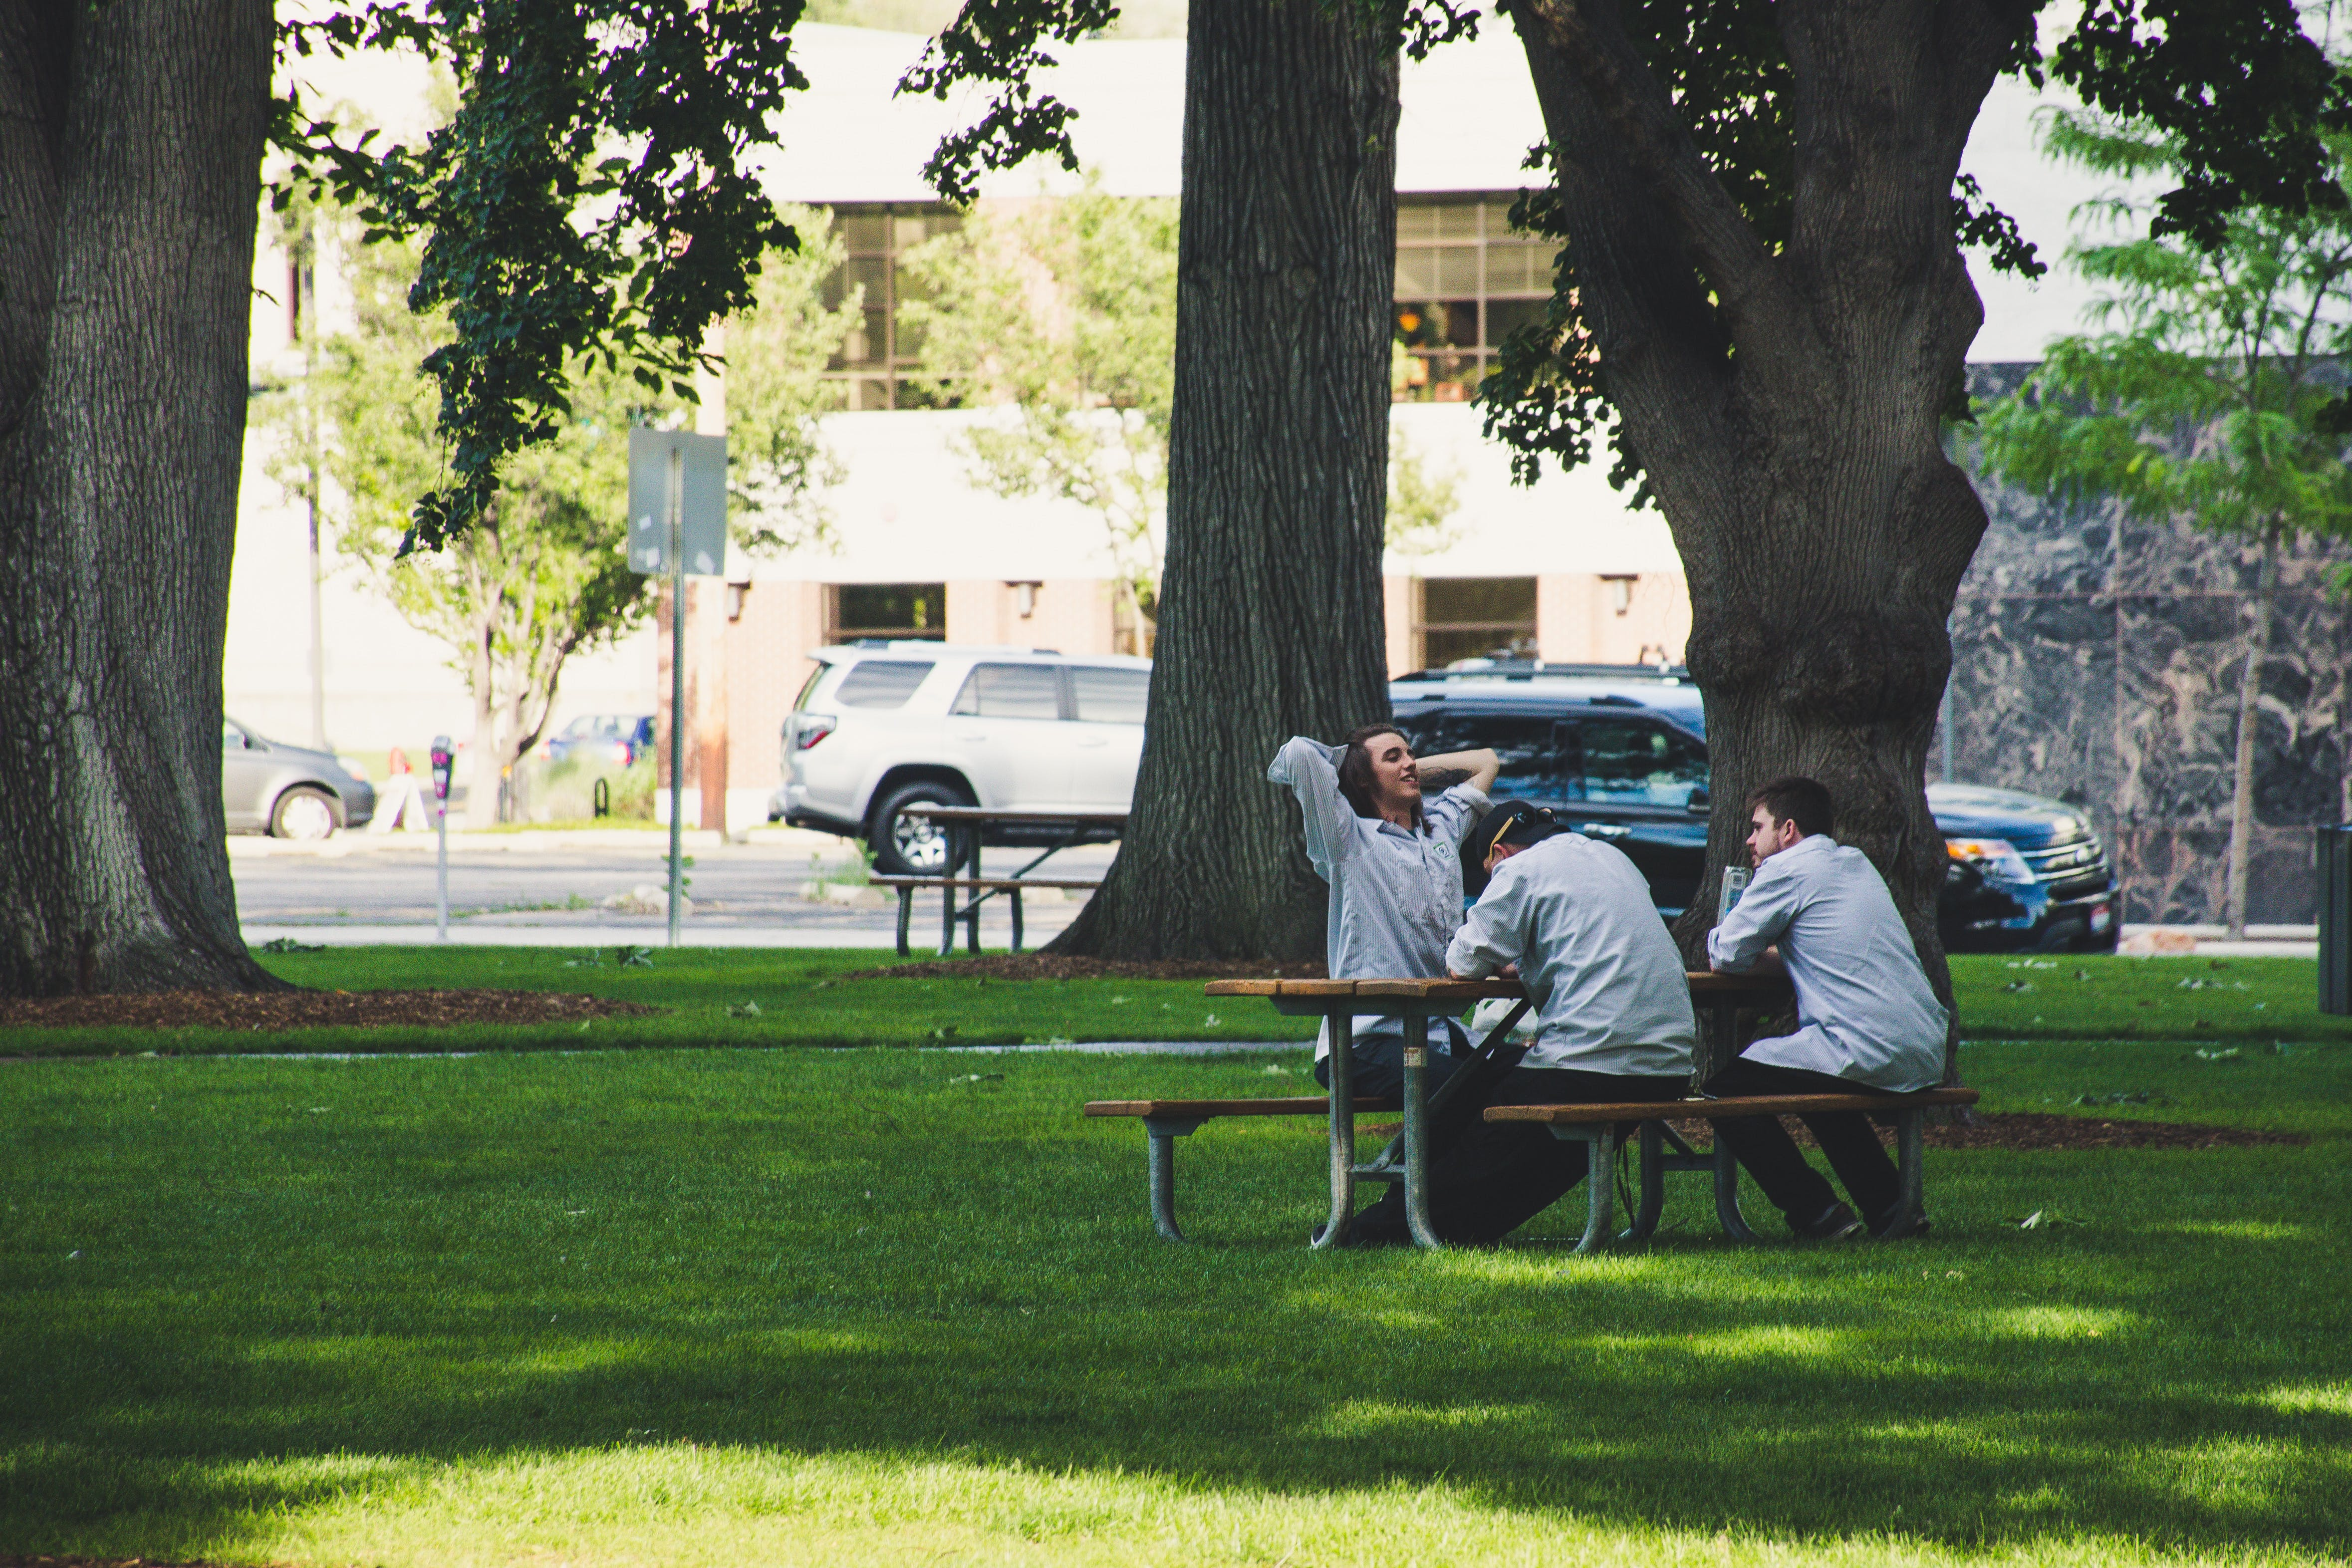 Photo Of Men Sitting On Picnic Bench